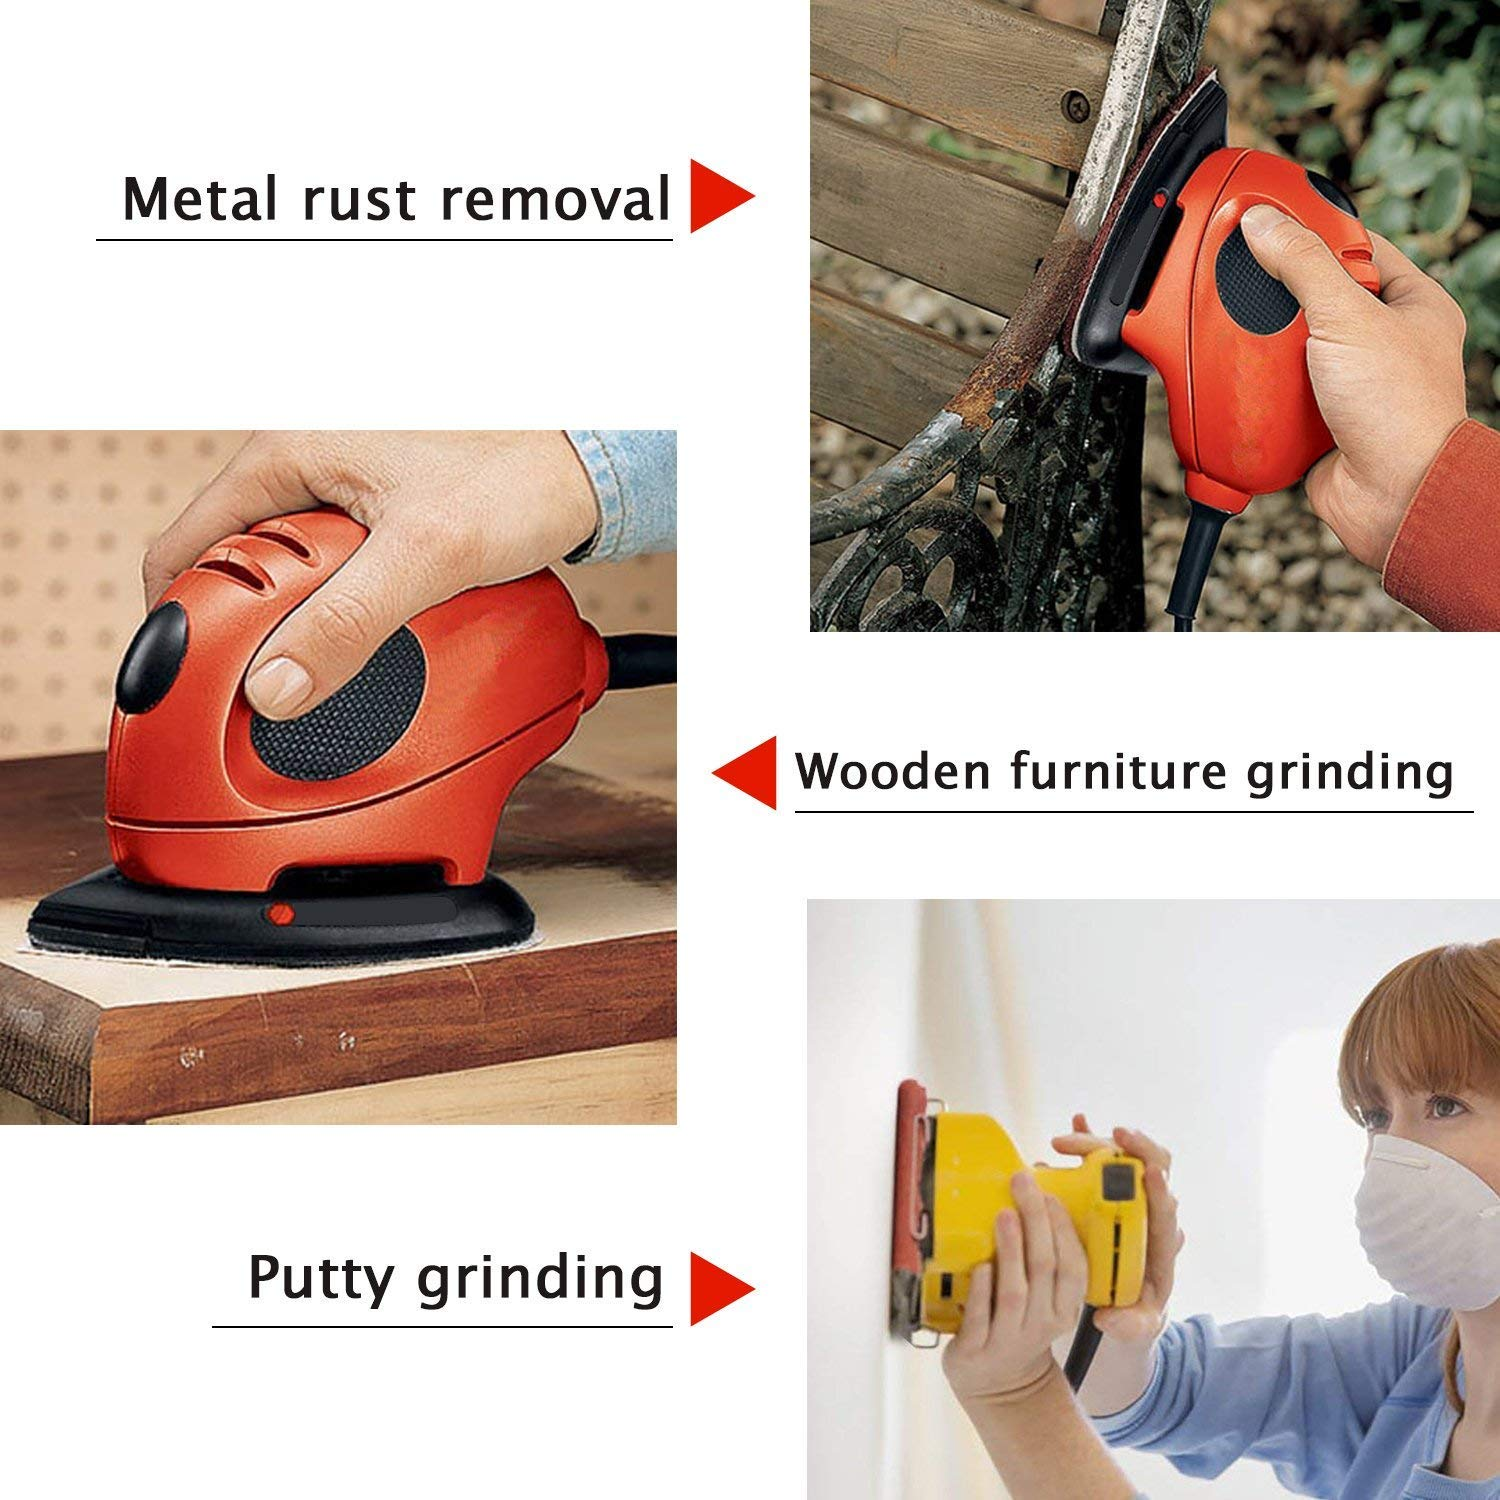 Leather Grinding and Polishing Wood HAWKUNG 60 Pieces Mouse Detail Sanding Sheets Sandpaper Rubber Plastic Hook and Loop Sanding Disc 40//60// 80//120// 180//240 Grits Sander Paper for Metal